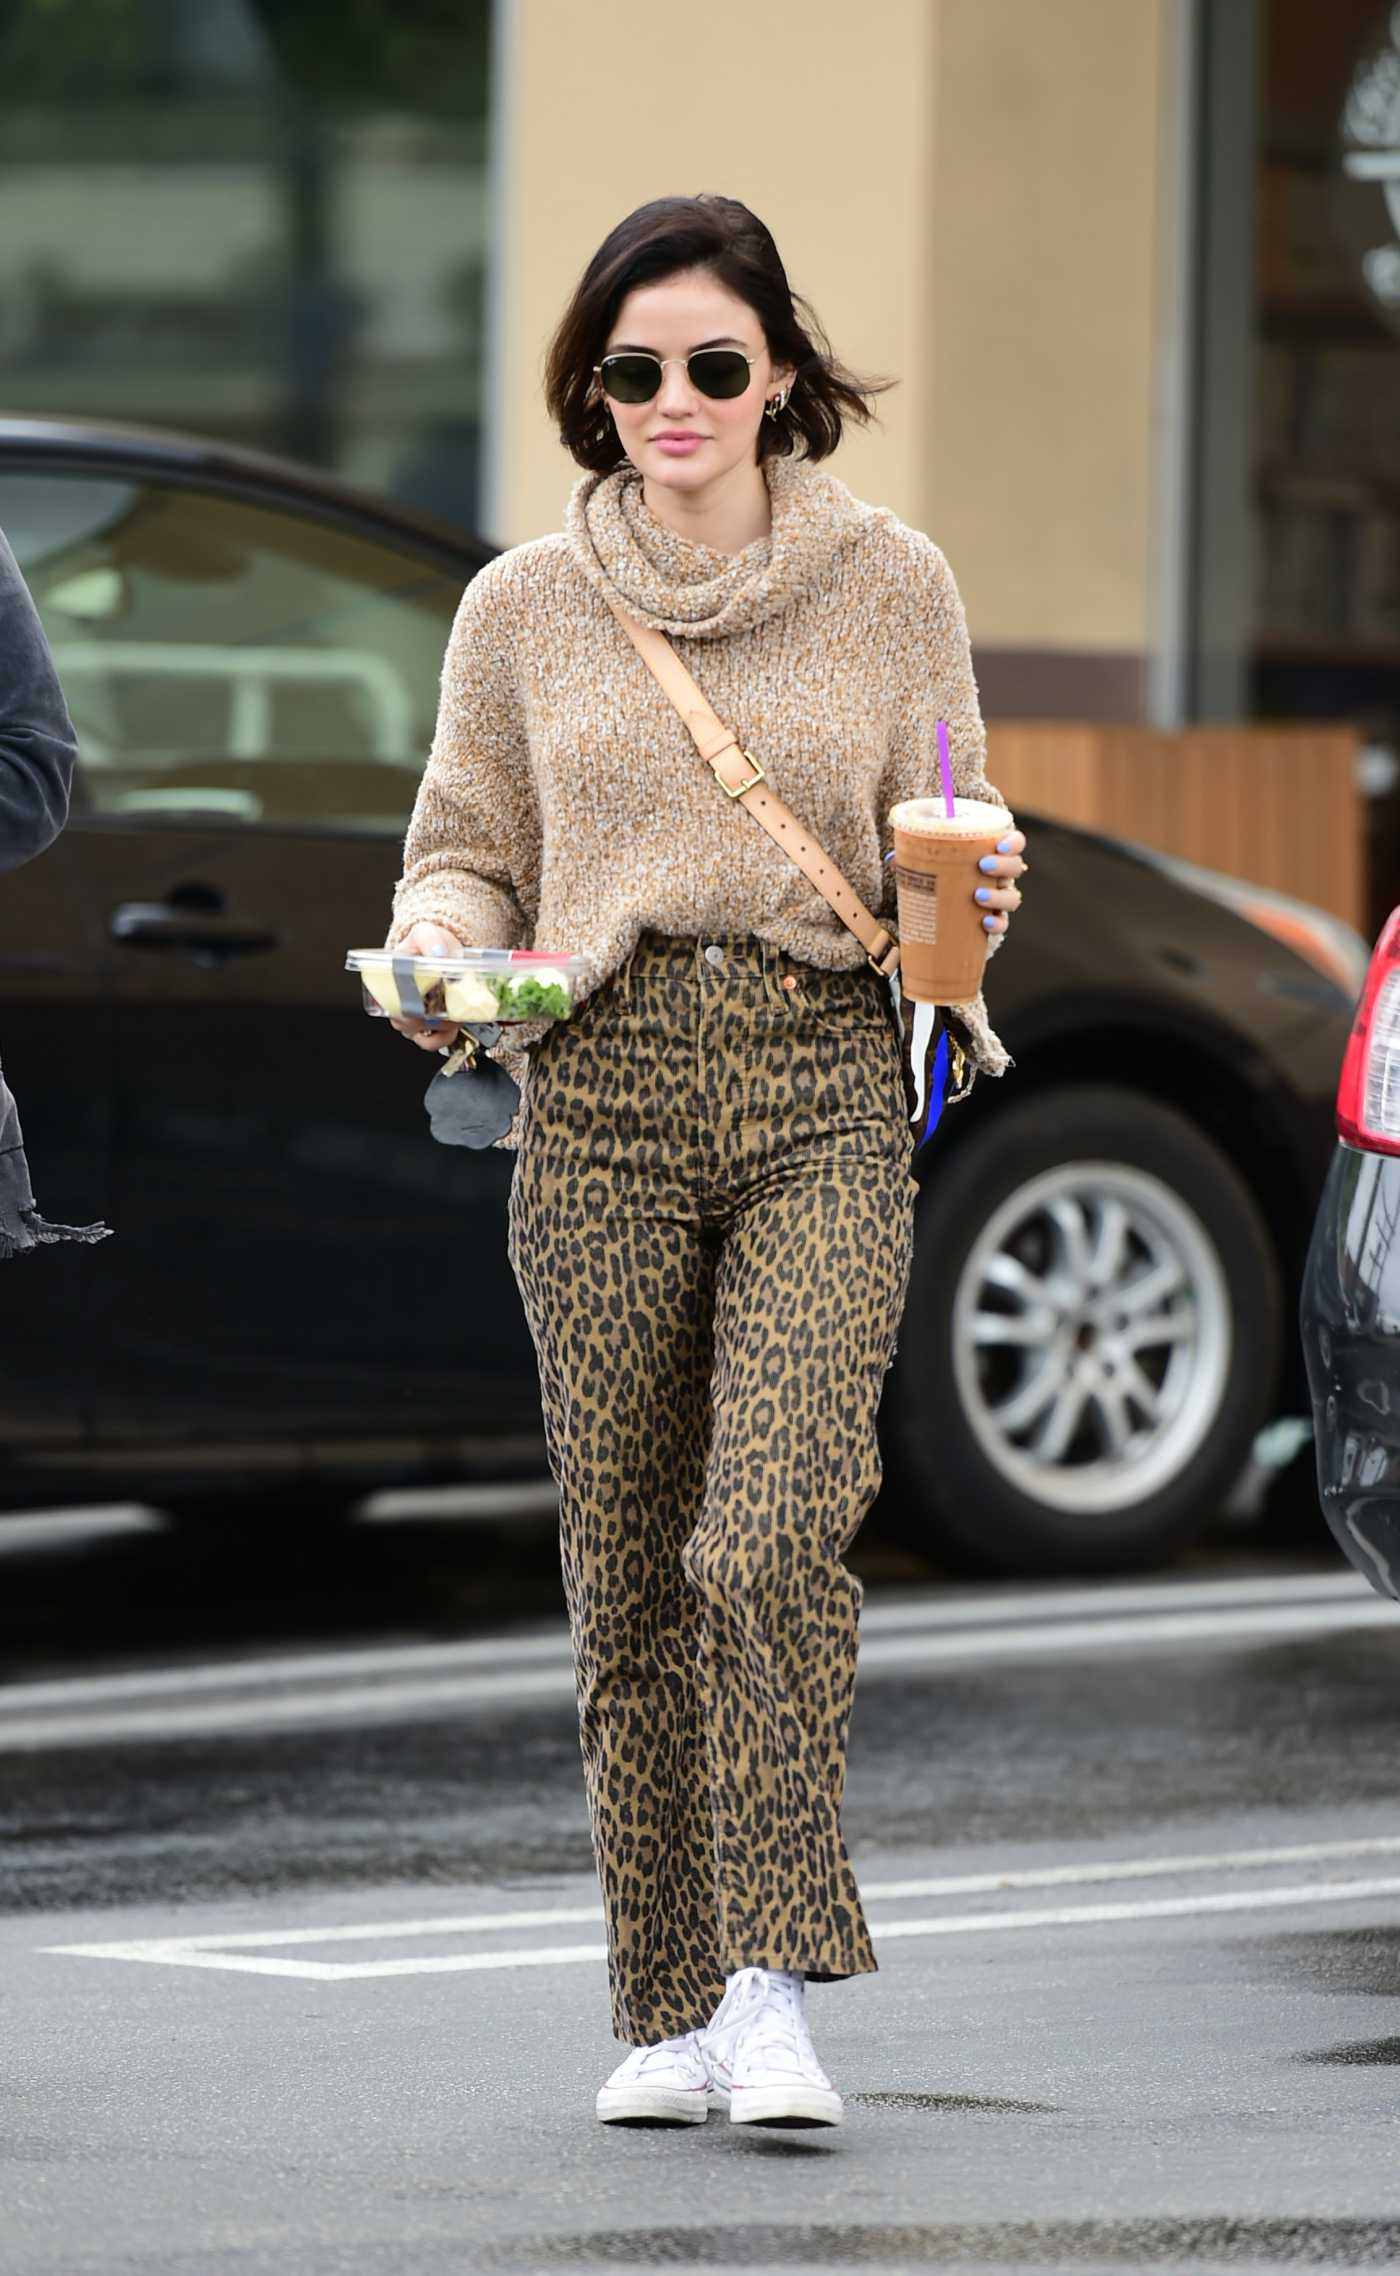 Lucy Hale in an Animal Print Pants Was Seen Out in Los Angeles 03/17/2020